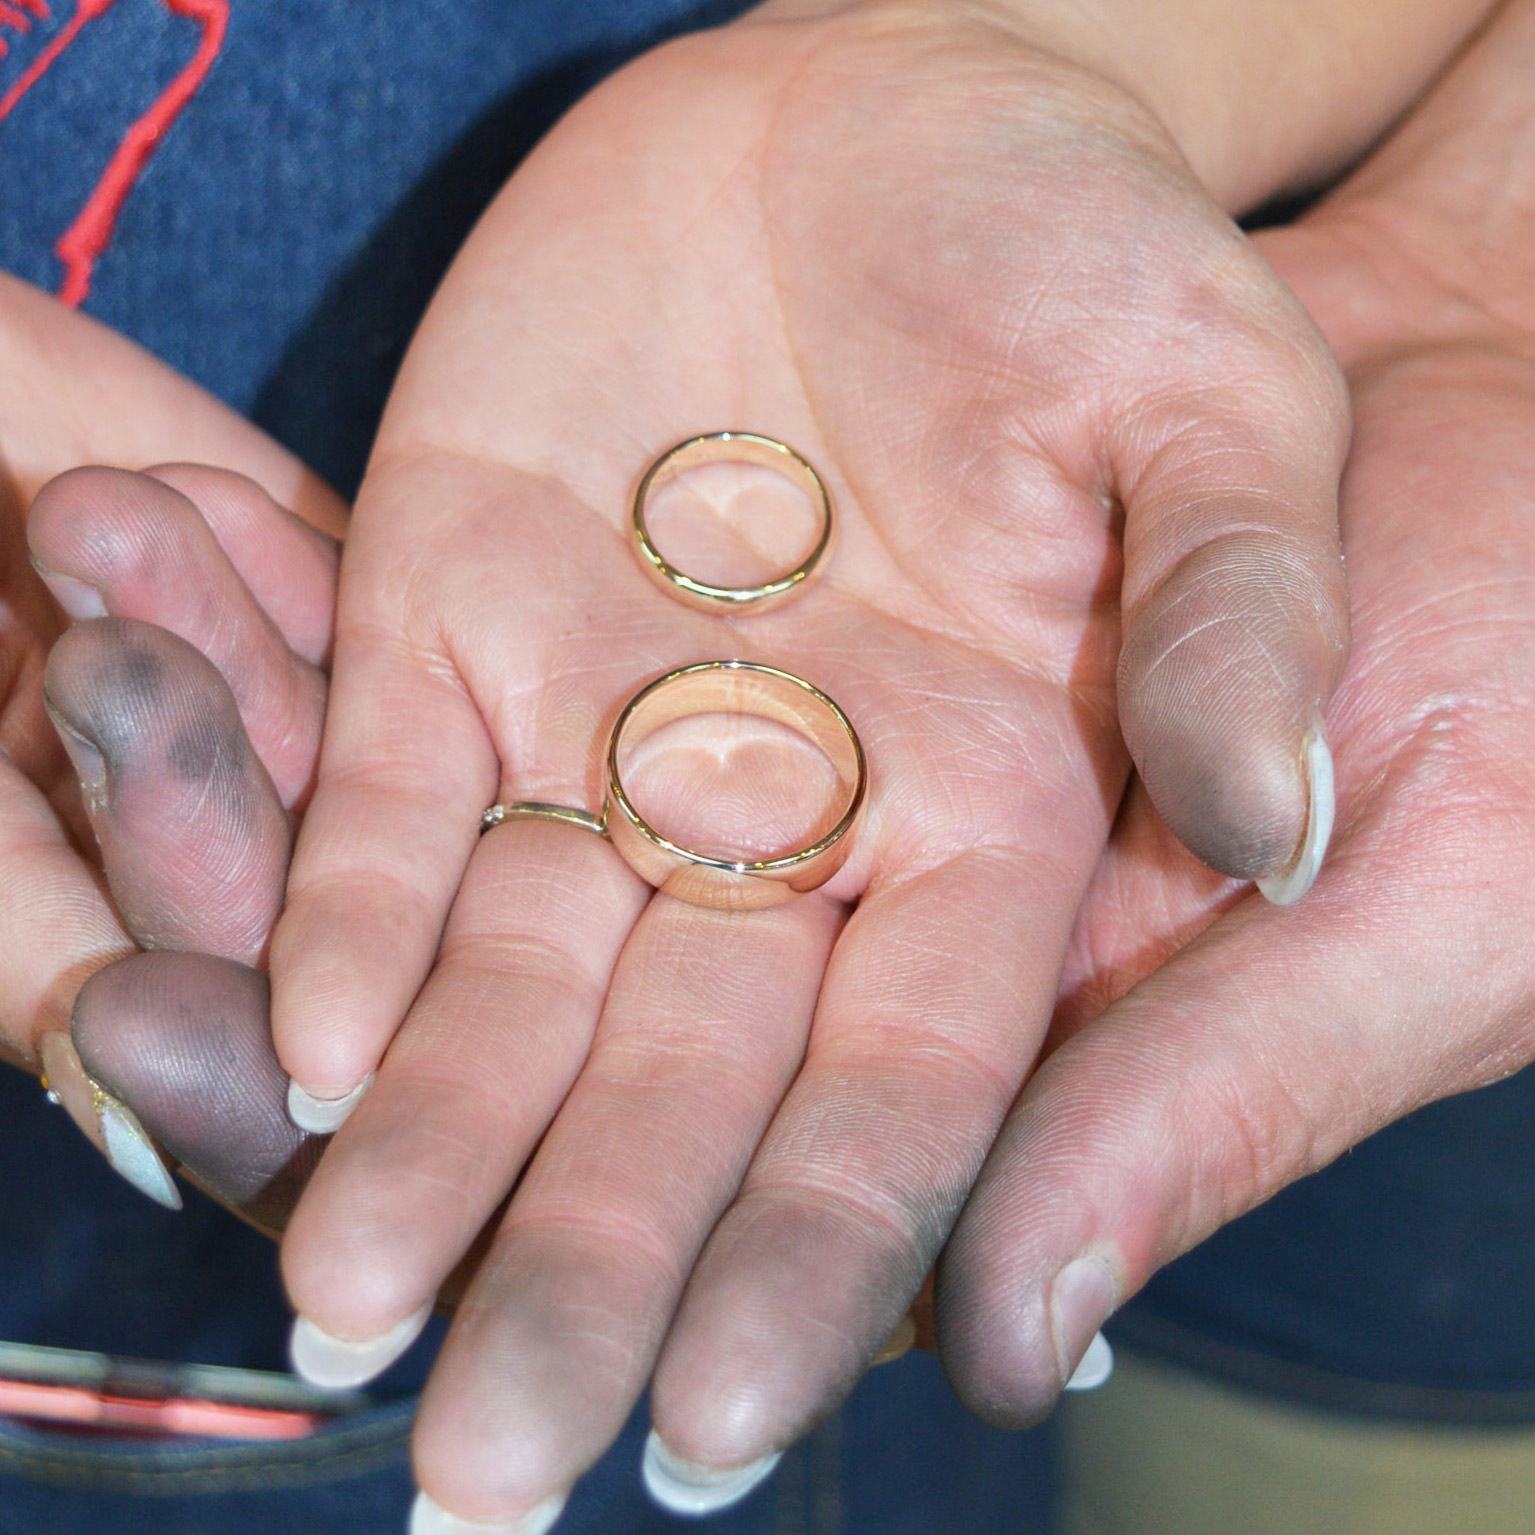 Couples Create - Creating Your Own Wedding Rings